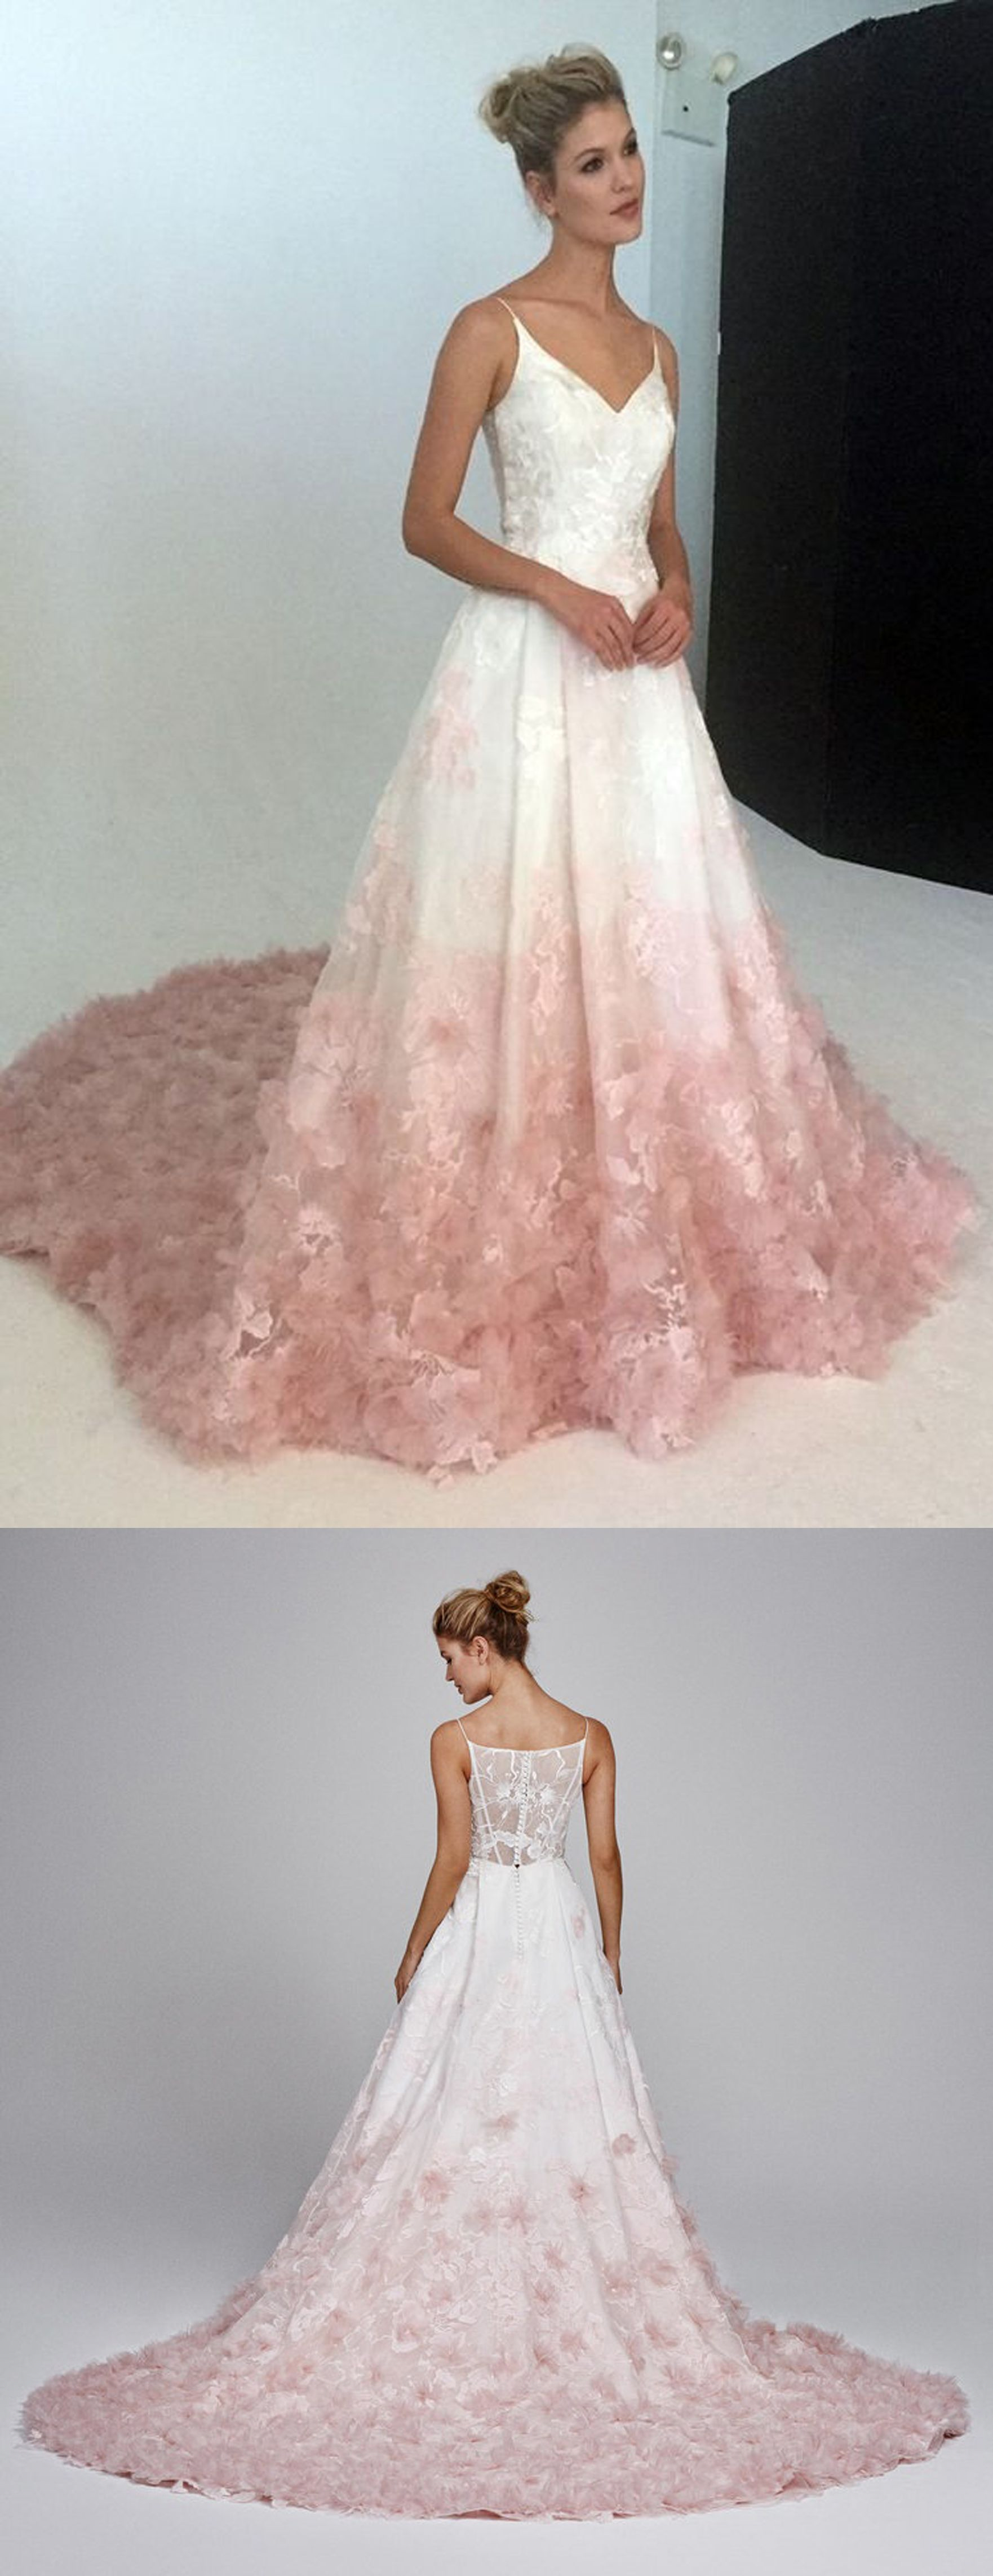 V-Neck Evening Dress,Silk Organza Formal Dress,Ball Gown with Floral ...